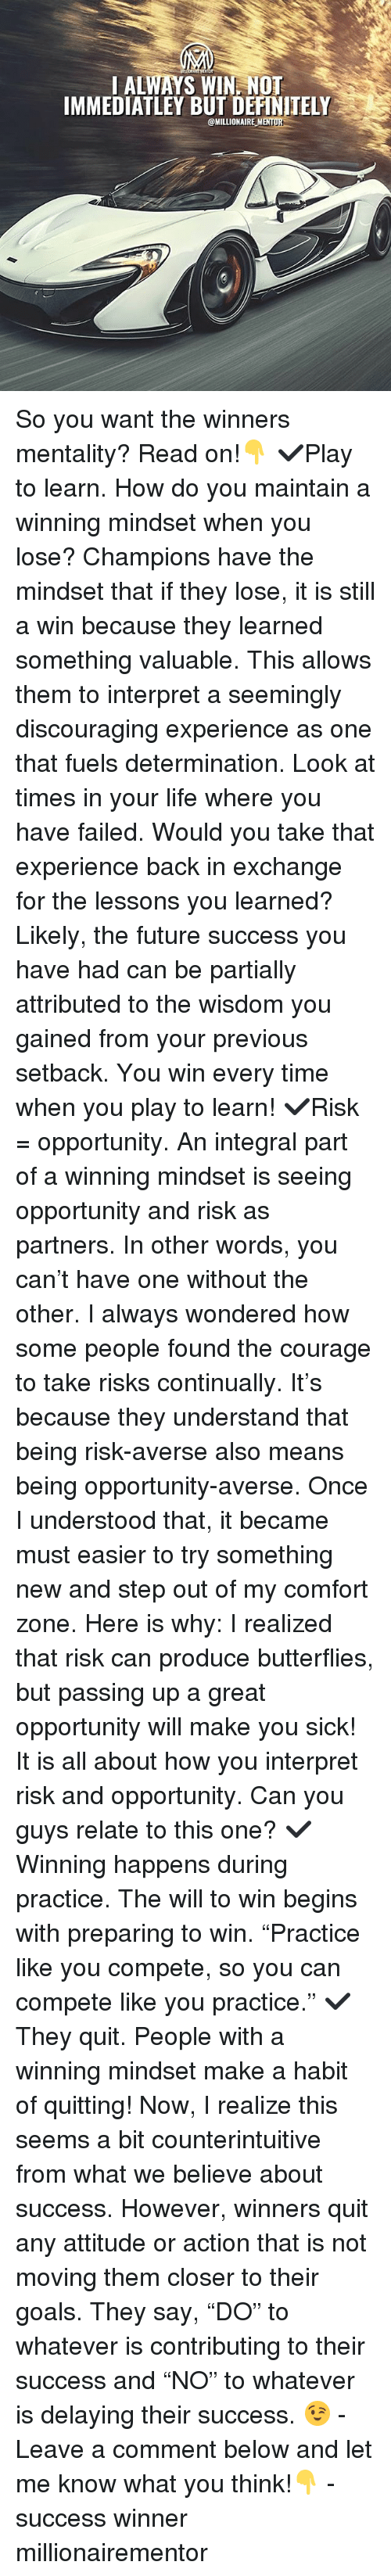 "You Have Failed: I ALWAYS WIN, NOT  IMMEDIATLEY BUT DEFINITELY  @MILLIONAIREMENT, So you want the winners mentality? Read on!👇 ✔️Play to learn. How do you maintain a winning mindset when you lose? Champions have the mindset that if they lose, it is still a win because they learned something valuable. This allows them to interpret a seemingly discouraging experience as one that fuels determination. Look at times in your life where you have failed. Would you take that experience back in exchange for the lessons you learned? Likely, the future success you have had can be partially attributed to the wisdom you gained from your previous setback. You win every time when you play to learn! ✔️Risk = opportunity. An integral part of a winning mindset is seeing opportunity and risk as partners. In other words, you can't have one without the other. I always wondered how some people found the courage to take risks continually. It's because they understand that being risk-averse also means being opportunity-averse. Once I understood that, it became must easier to try something new and step out of my comfort zone. Here is why: I realized that risk can produce butterflies, but passing up a great opportunity will make you sick! It is all about how you interpret risk and opportunity. Can you guys relate to this one? ✔️Winning happens during practice. The will to win begins with preparing to win. ""Practice like you compete, so you can compete like you practice."" ✔️They quit. People with a winning mindset make a habit of quitting! Now, I realize this seems a bit counterintuitive from what we believe about success. However, winners quit any attitude or action that is not moving them closer to their goals. They say, ""DO"" to whatever is contributing to their success and ""NO"" to whatever is delaying their success. 😉 - Leave a comment below and let me know what you think!👇 - success winner millionairementor"